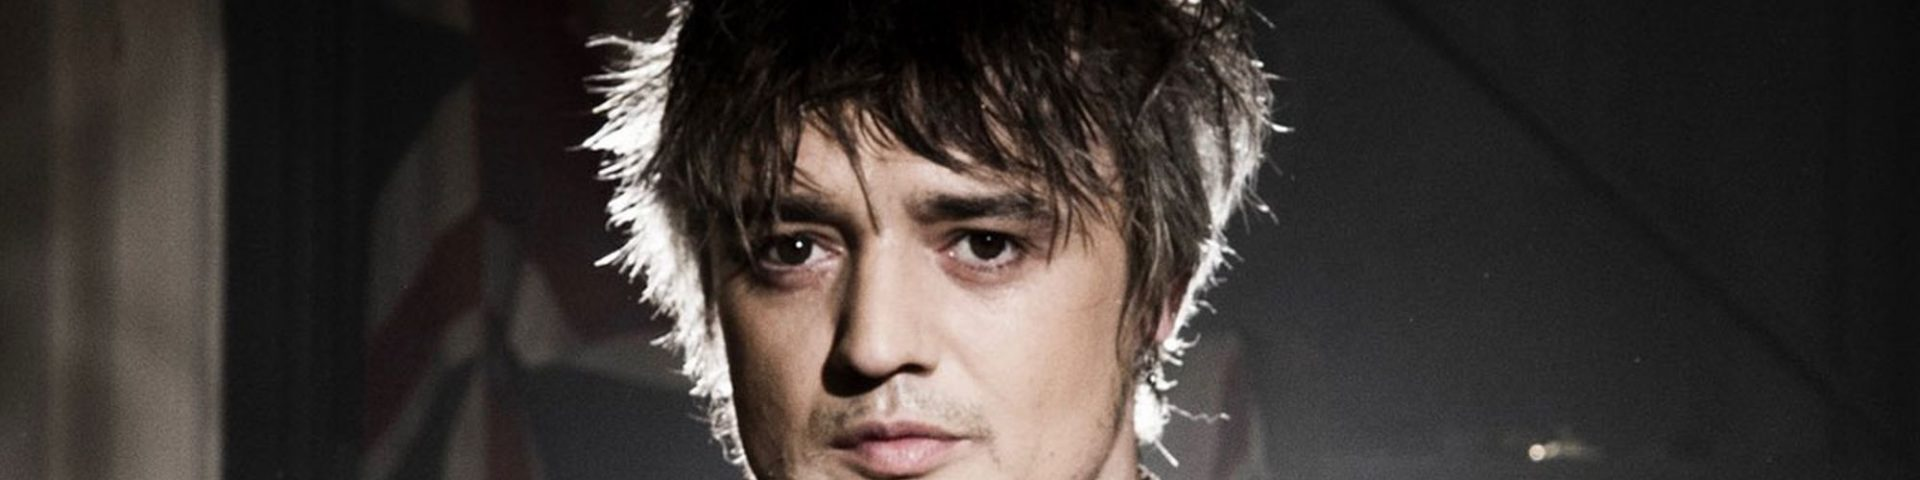 Pete Doherty a Roncade, 11/10/19